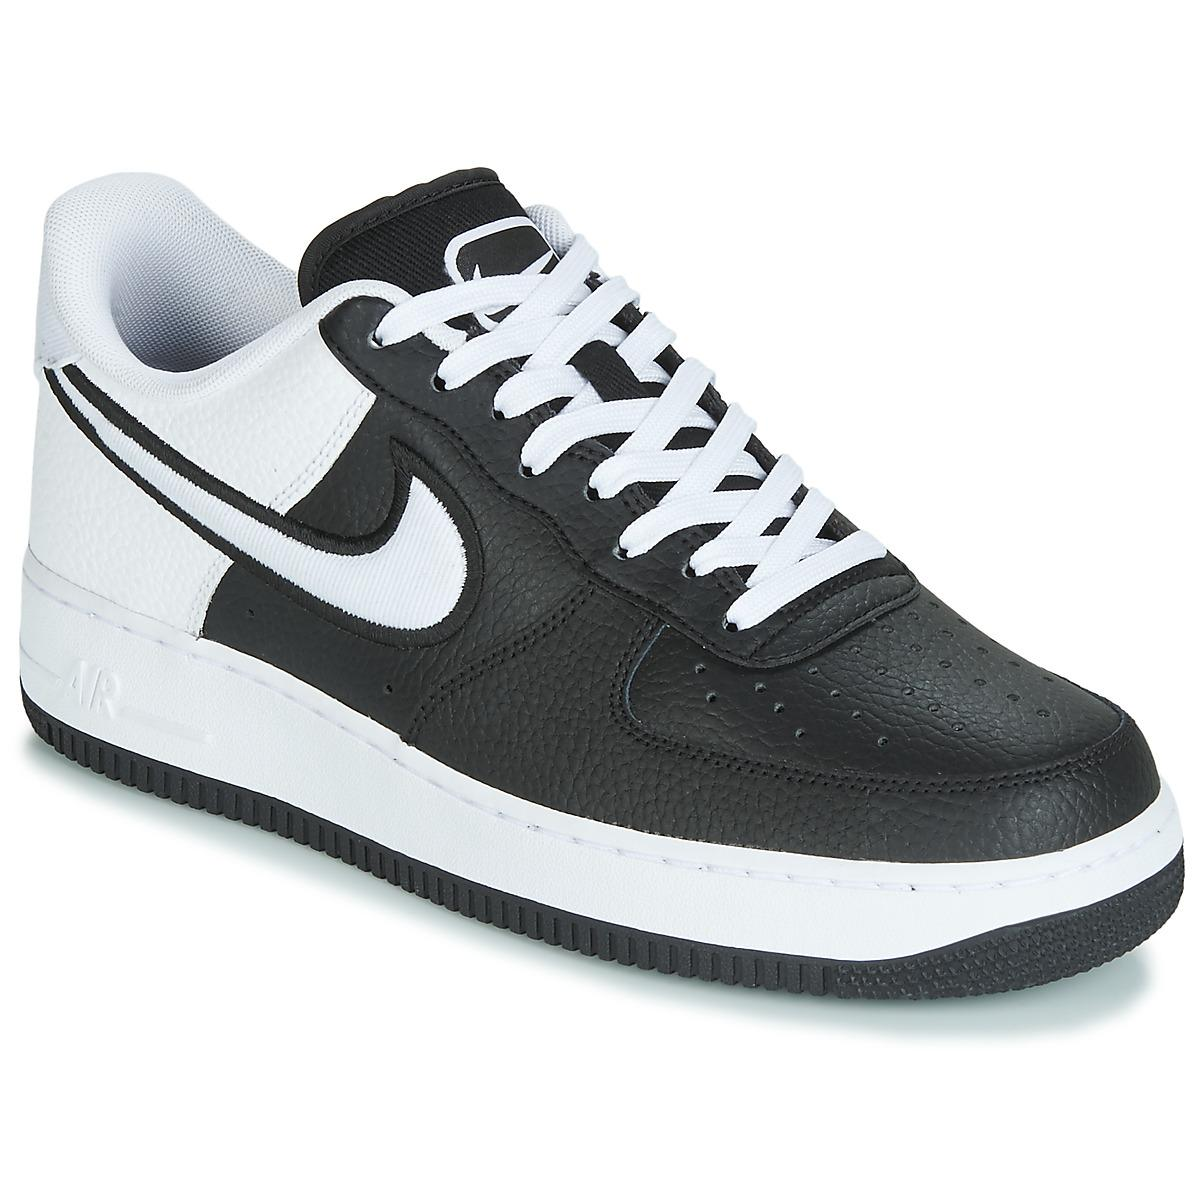 premium selection 29c6f 09855 Nike. Air Force 1  07 Lv8 1 Men s Shoes (trainers) In Black